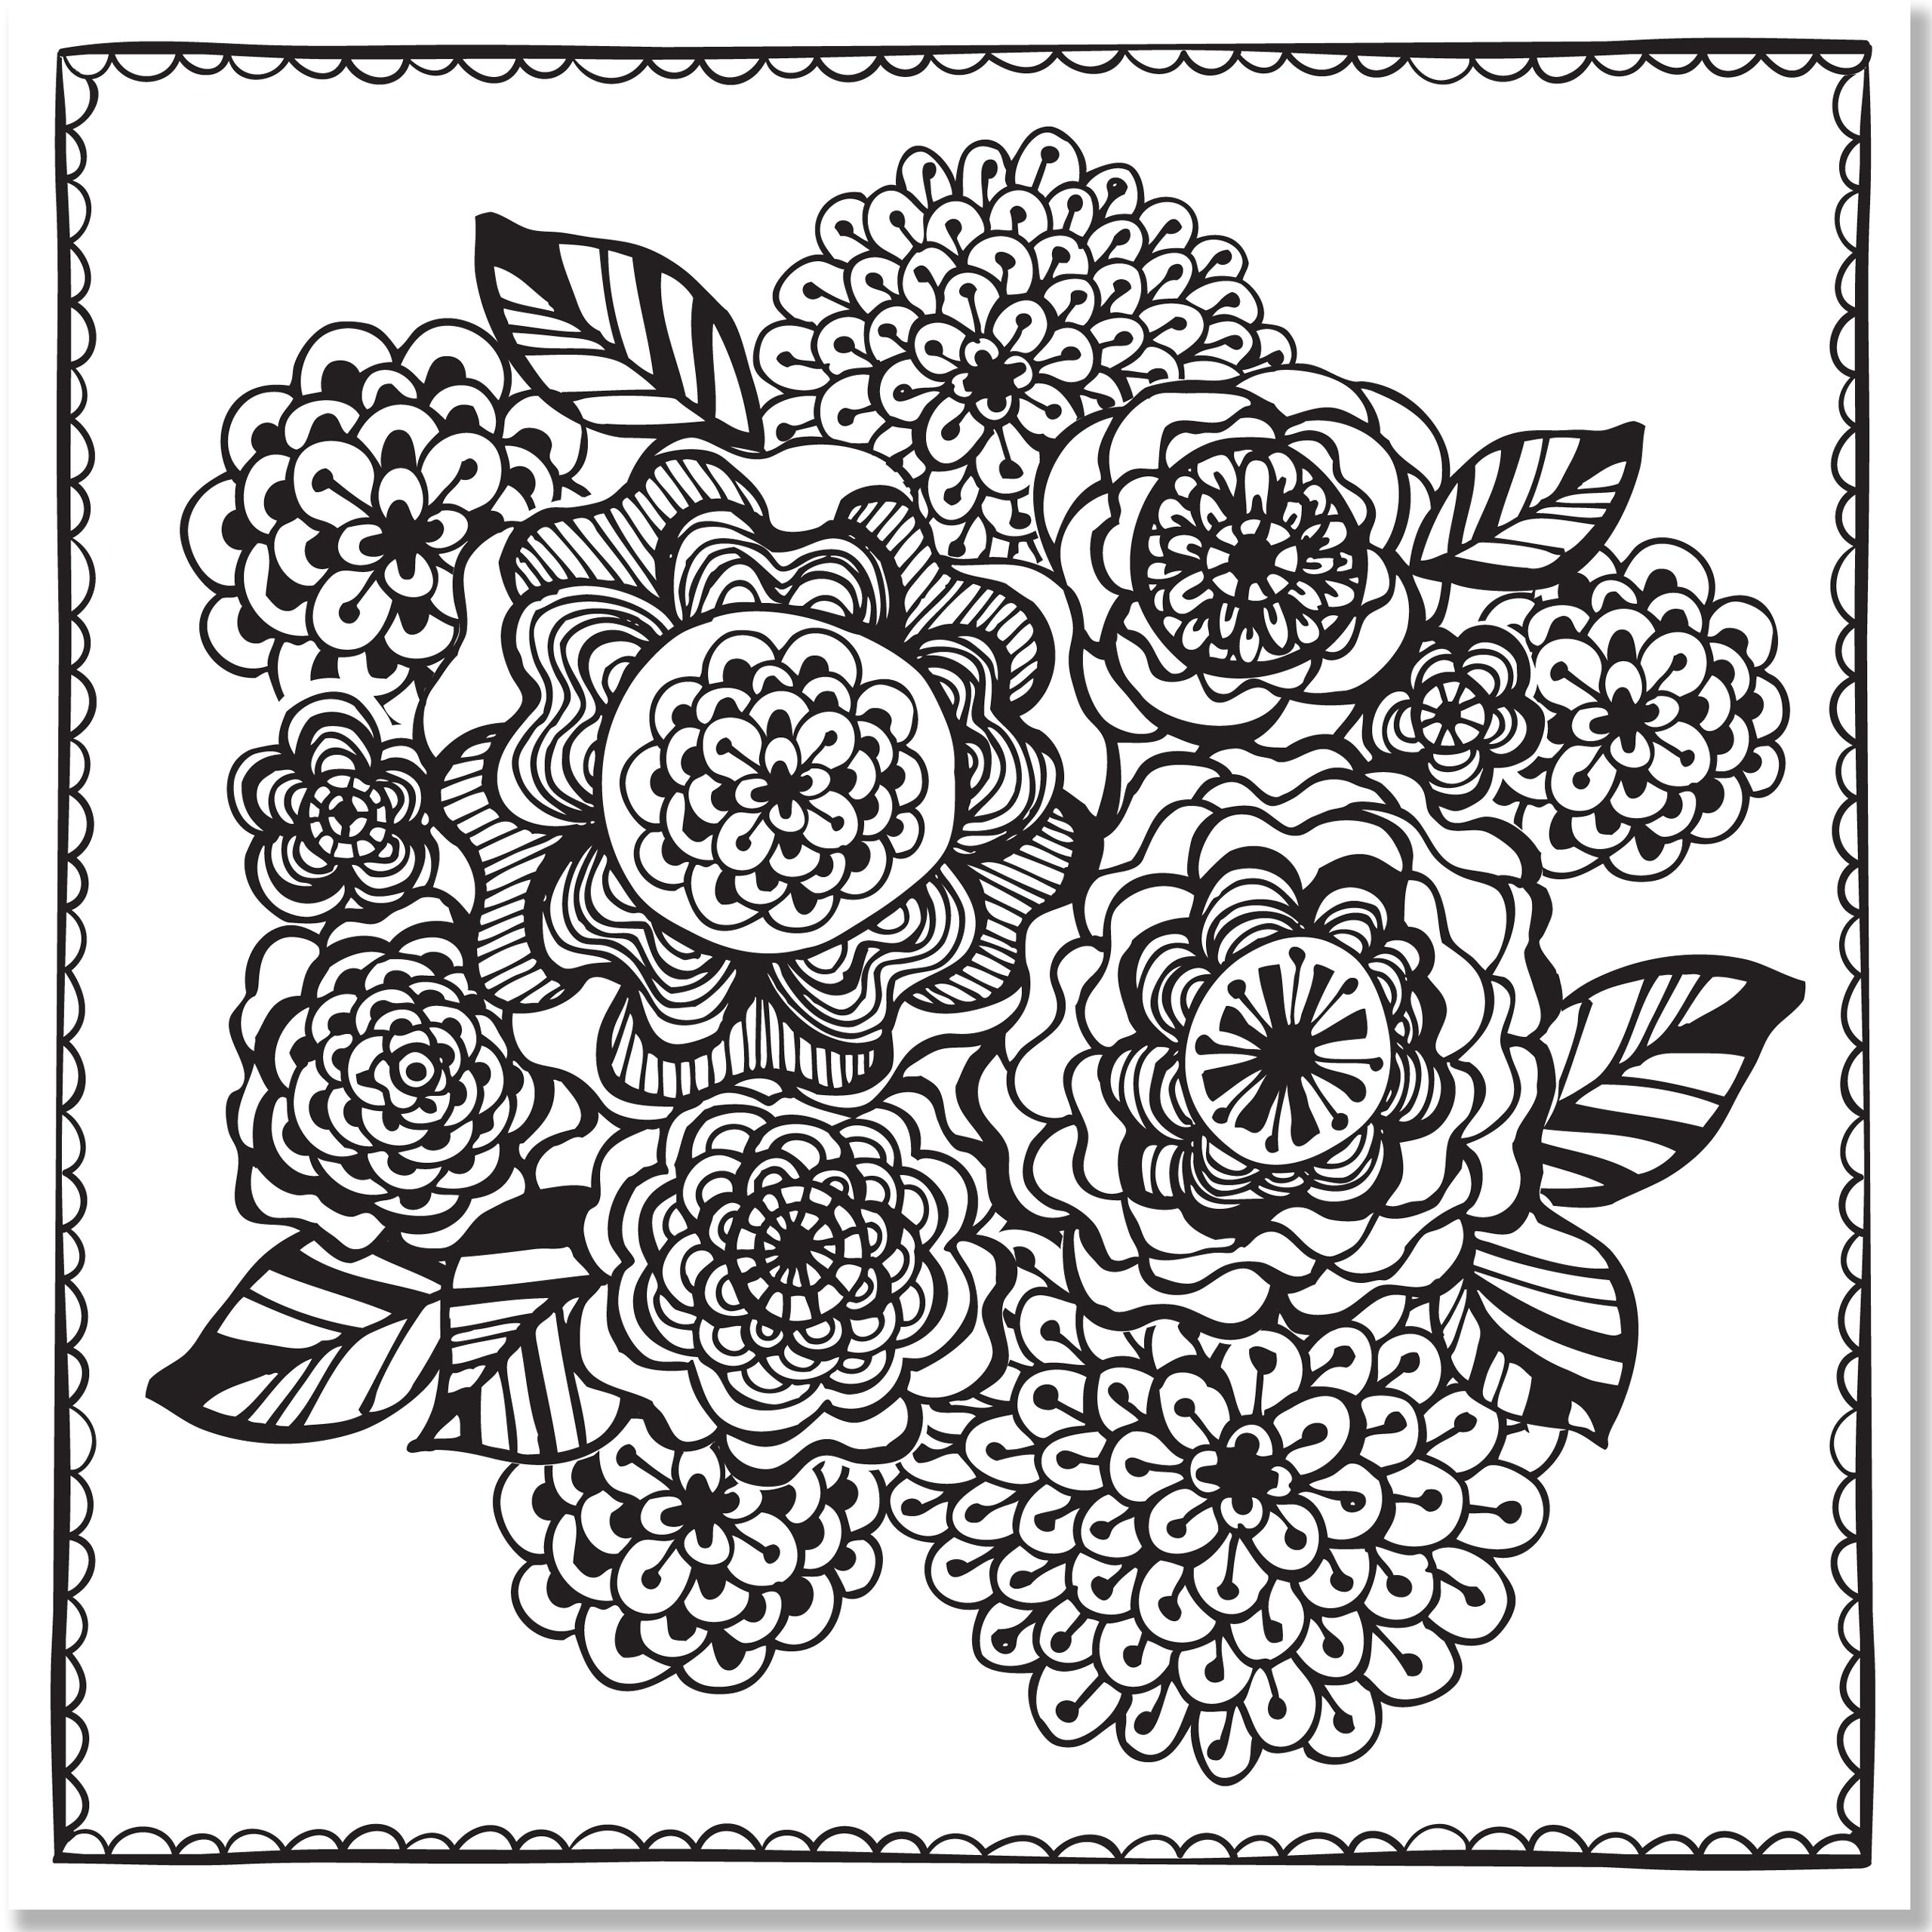 Stress relieving coloring - Amazon Com Joyful Designs Adult Coloring Book 31 Stress Relieving Designs Studio 9781441317568 Joy Ting Books